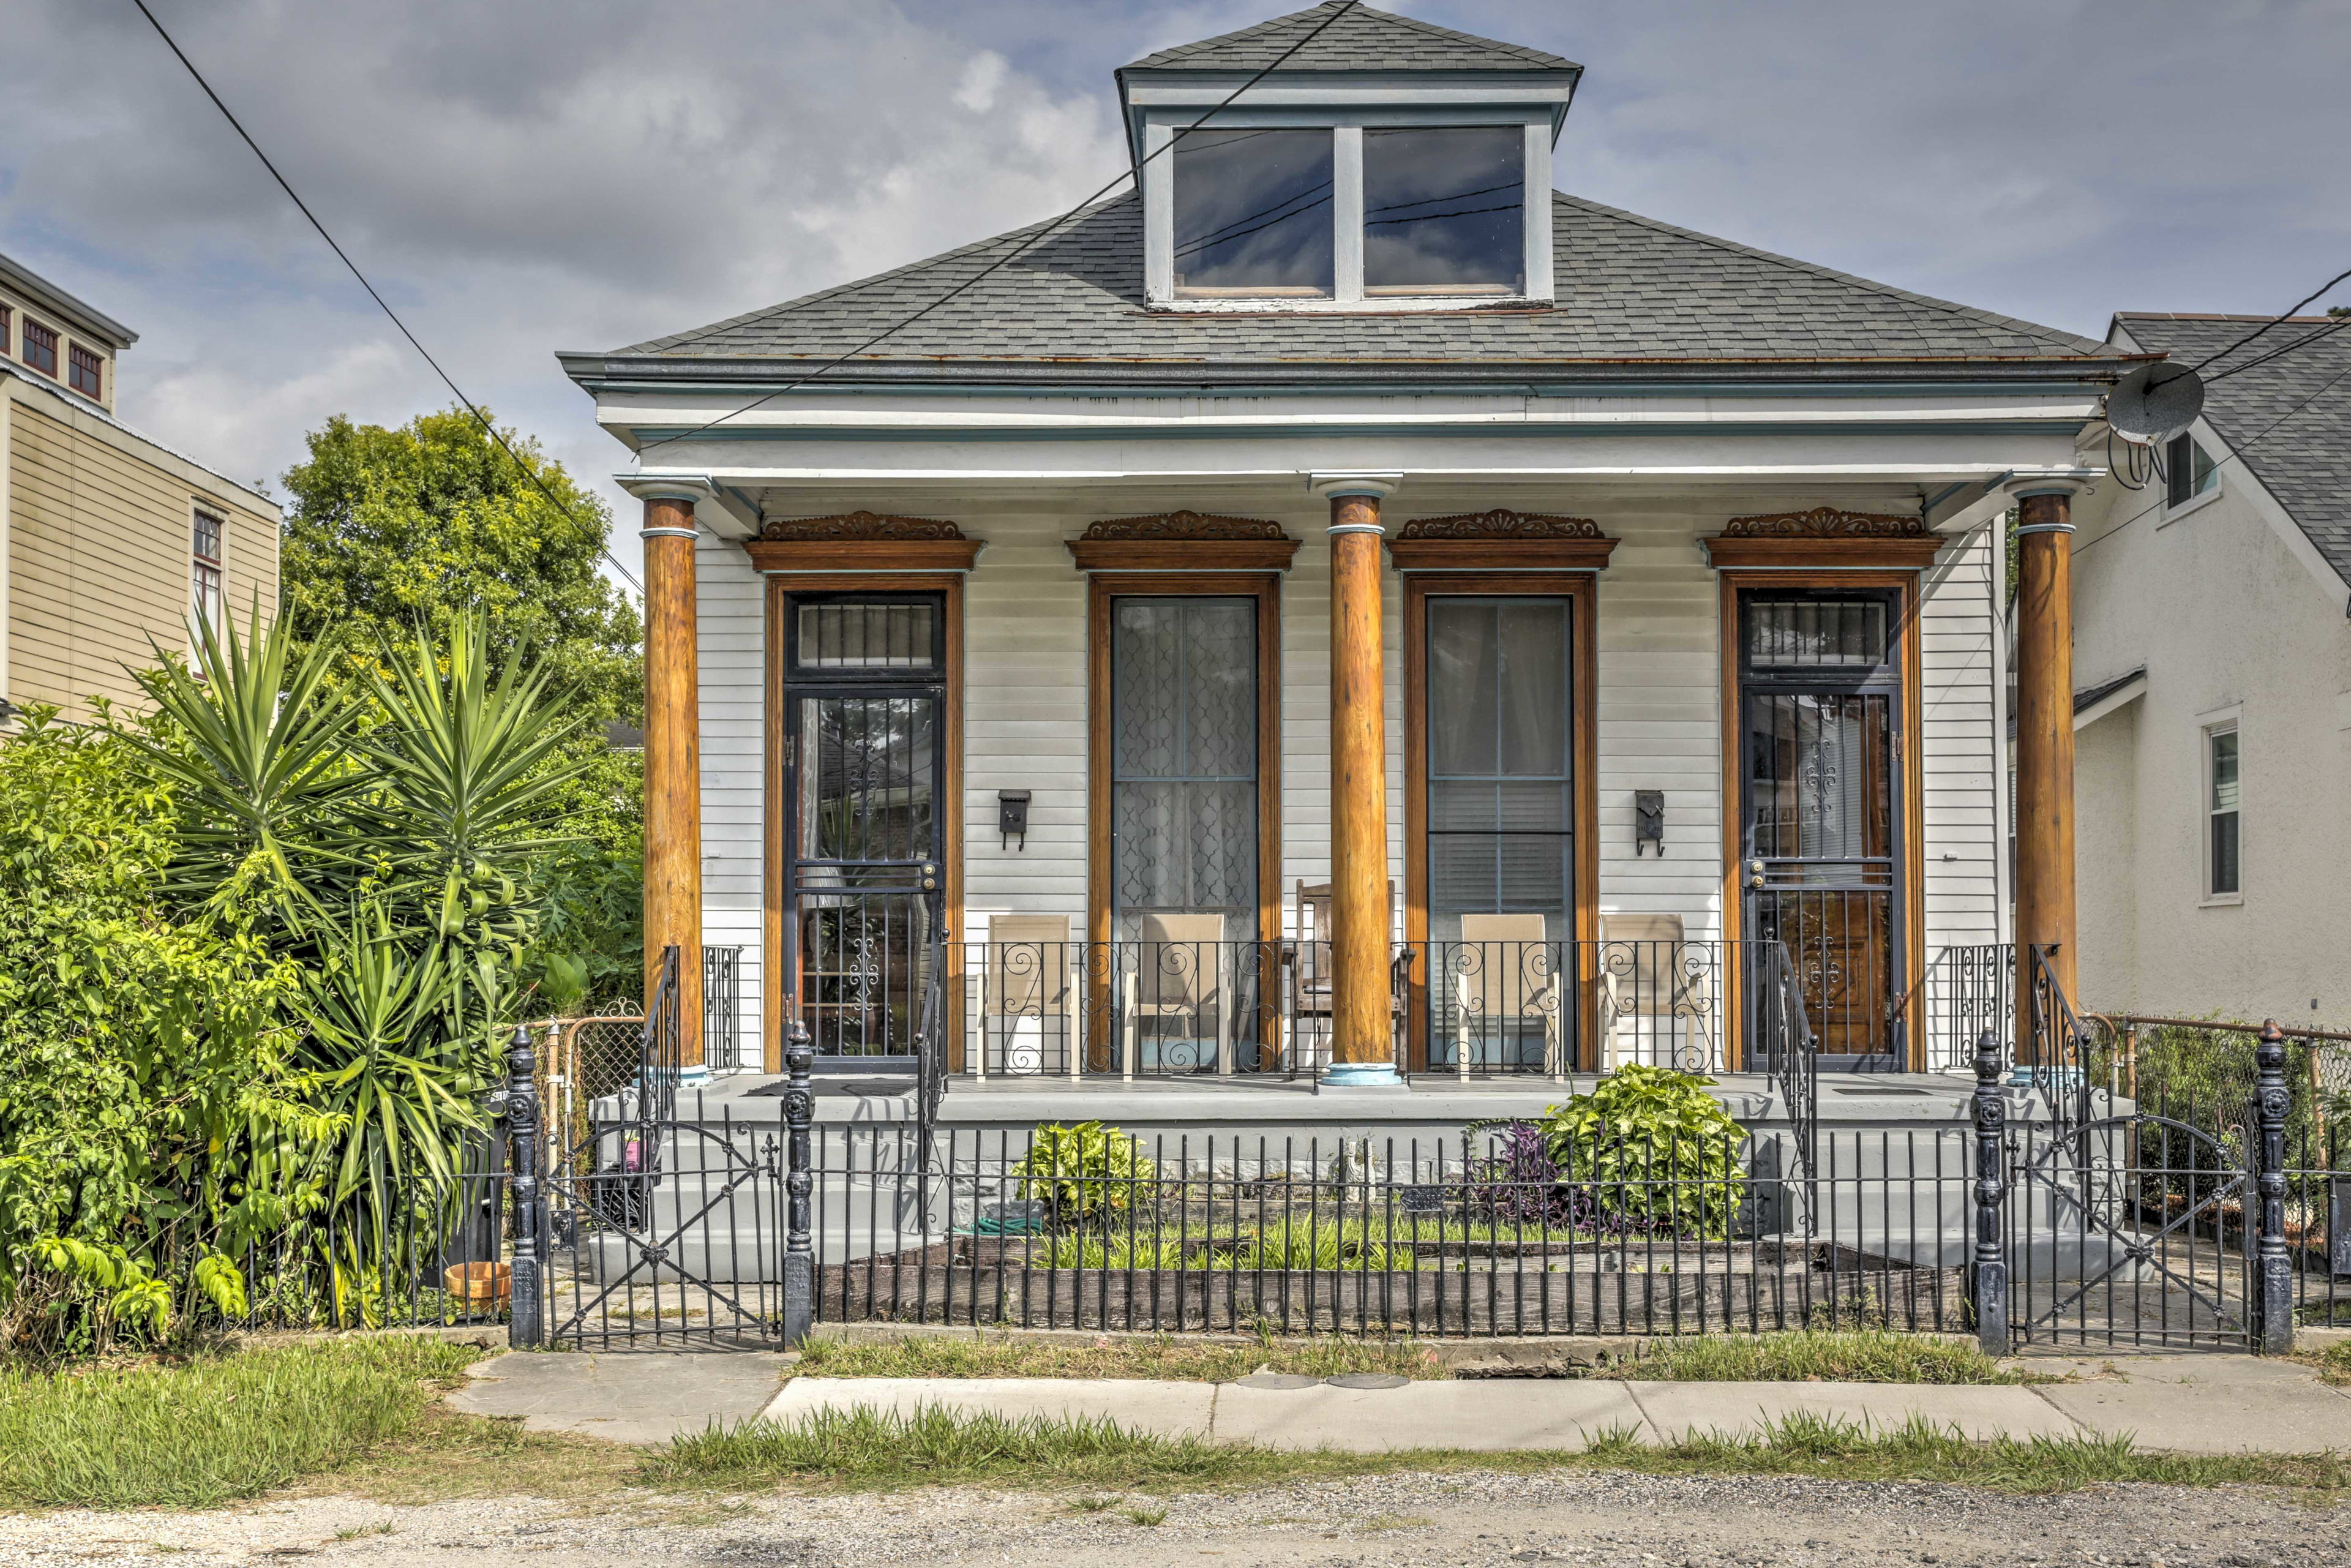 Stay in the heart of the city during your getaway at this 3-bedroom, 1-bathroom vacation rental house in New Orleans!